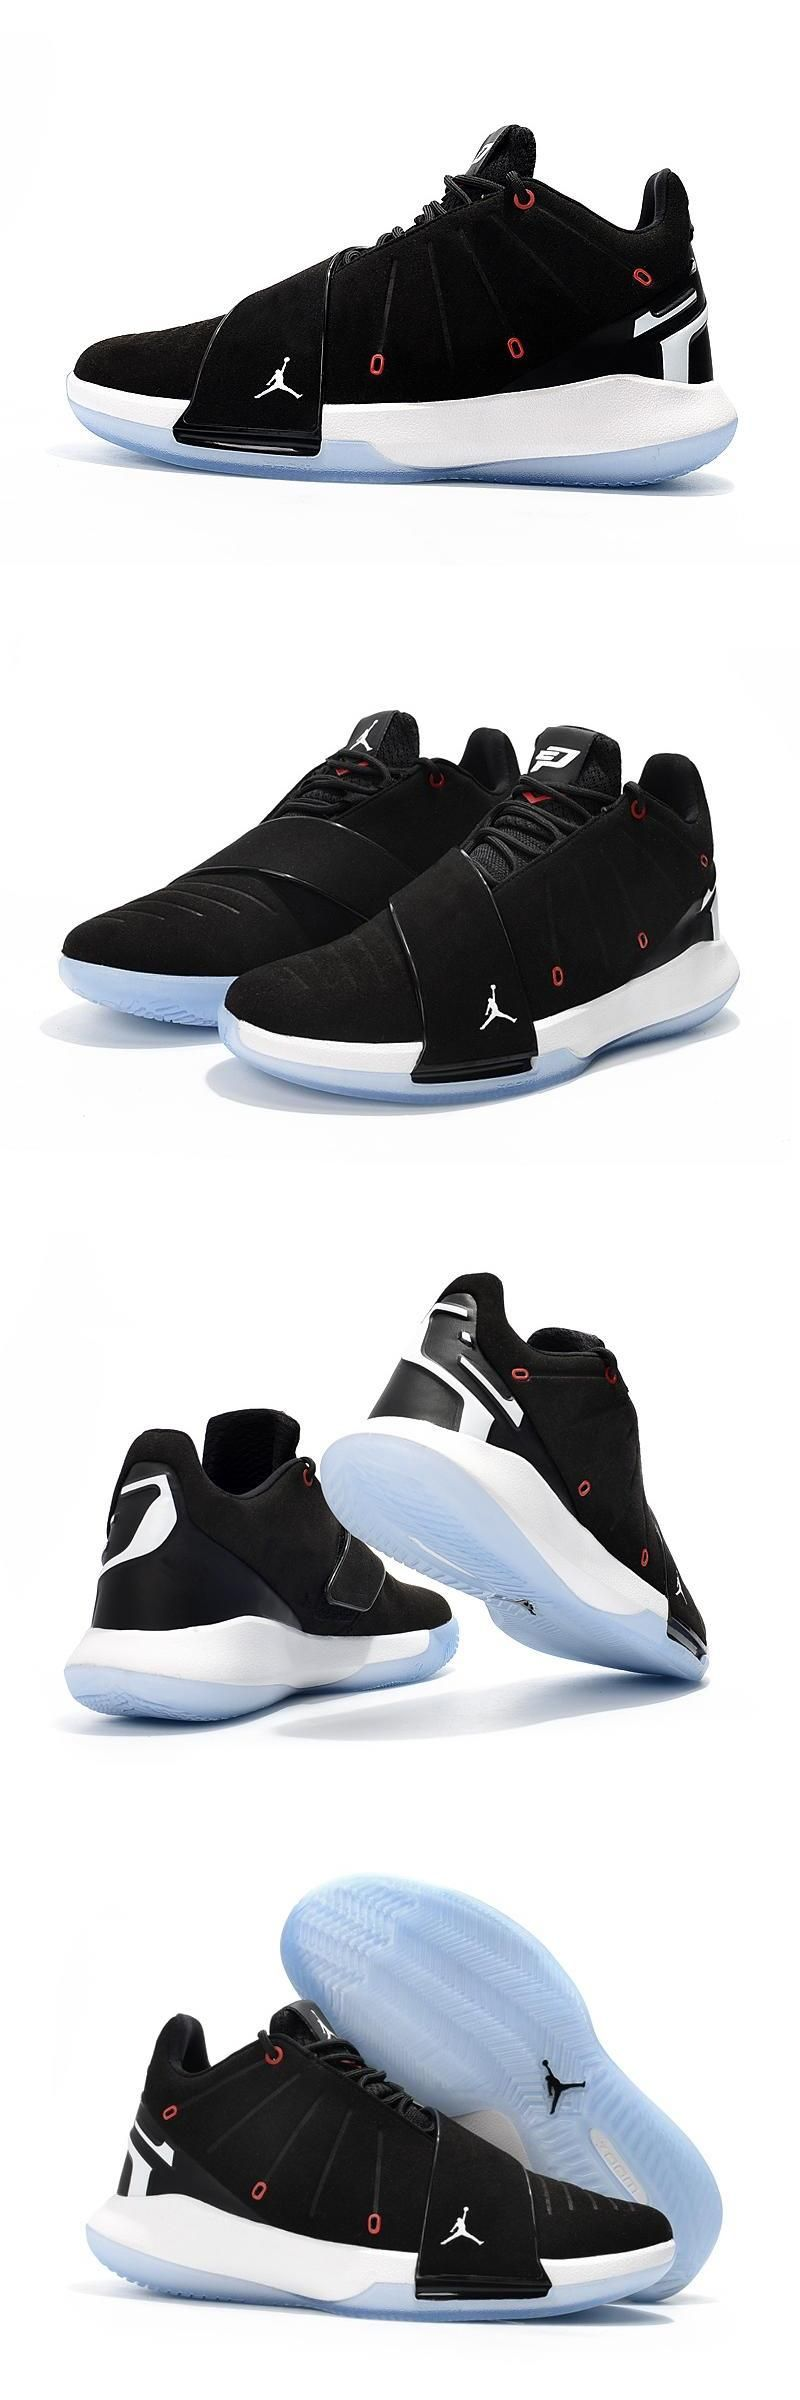 "2020 的 2019 Timelimited Sale Men""s Jordan CP3.XI Chris"